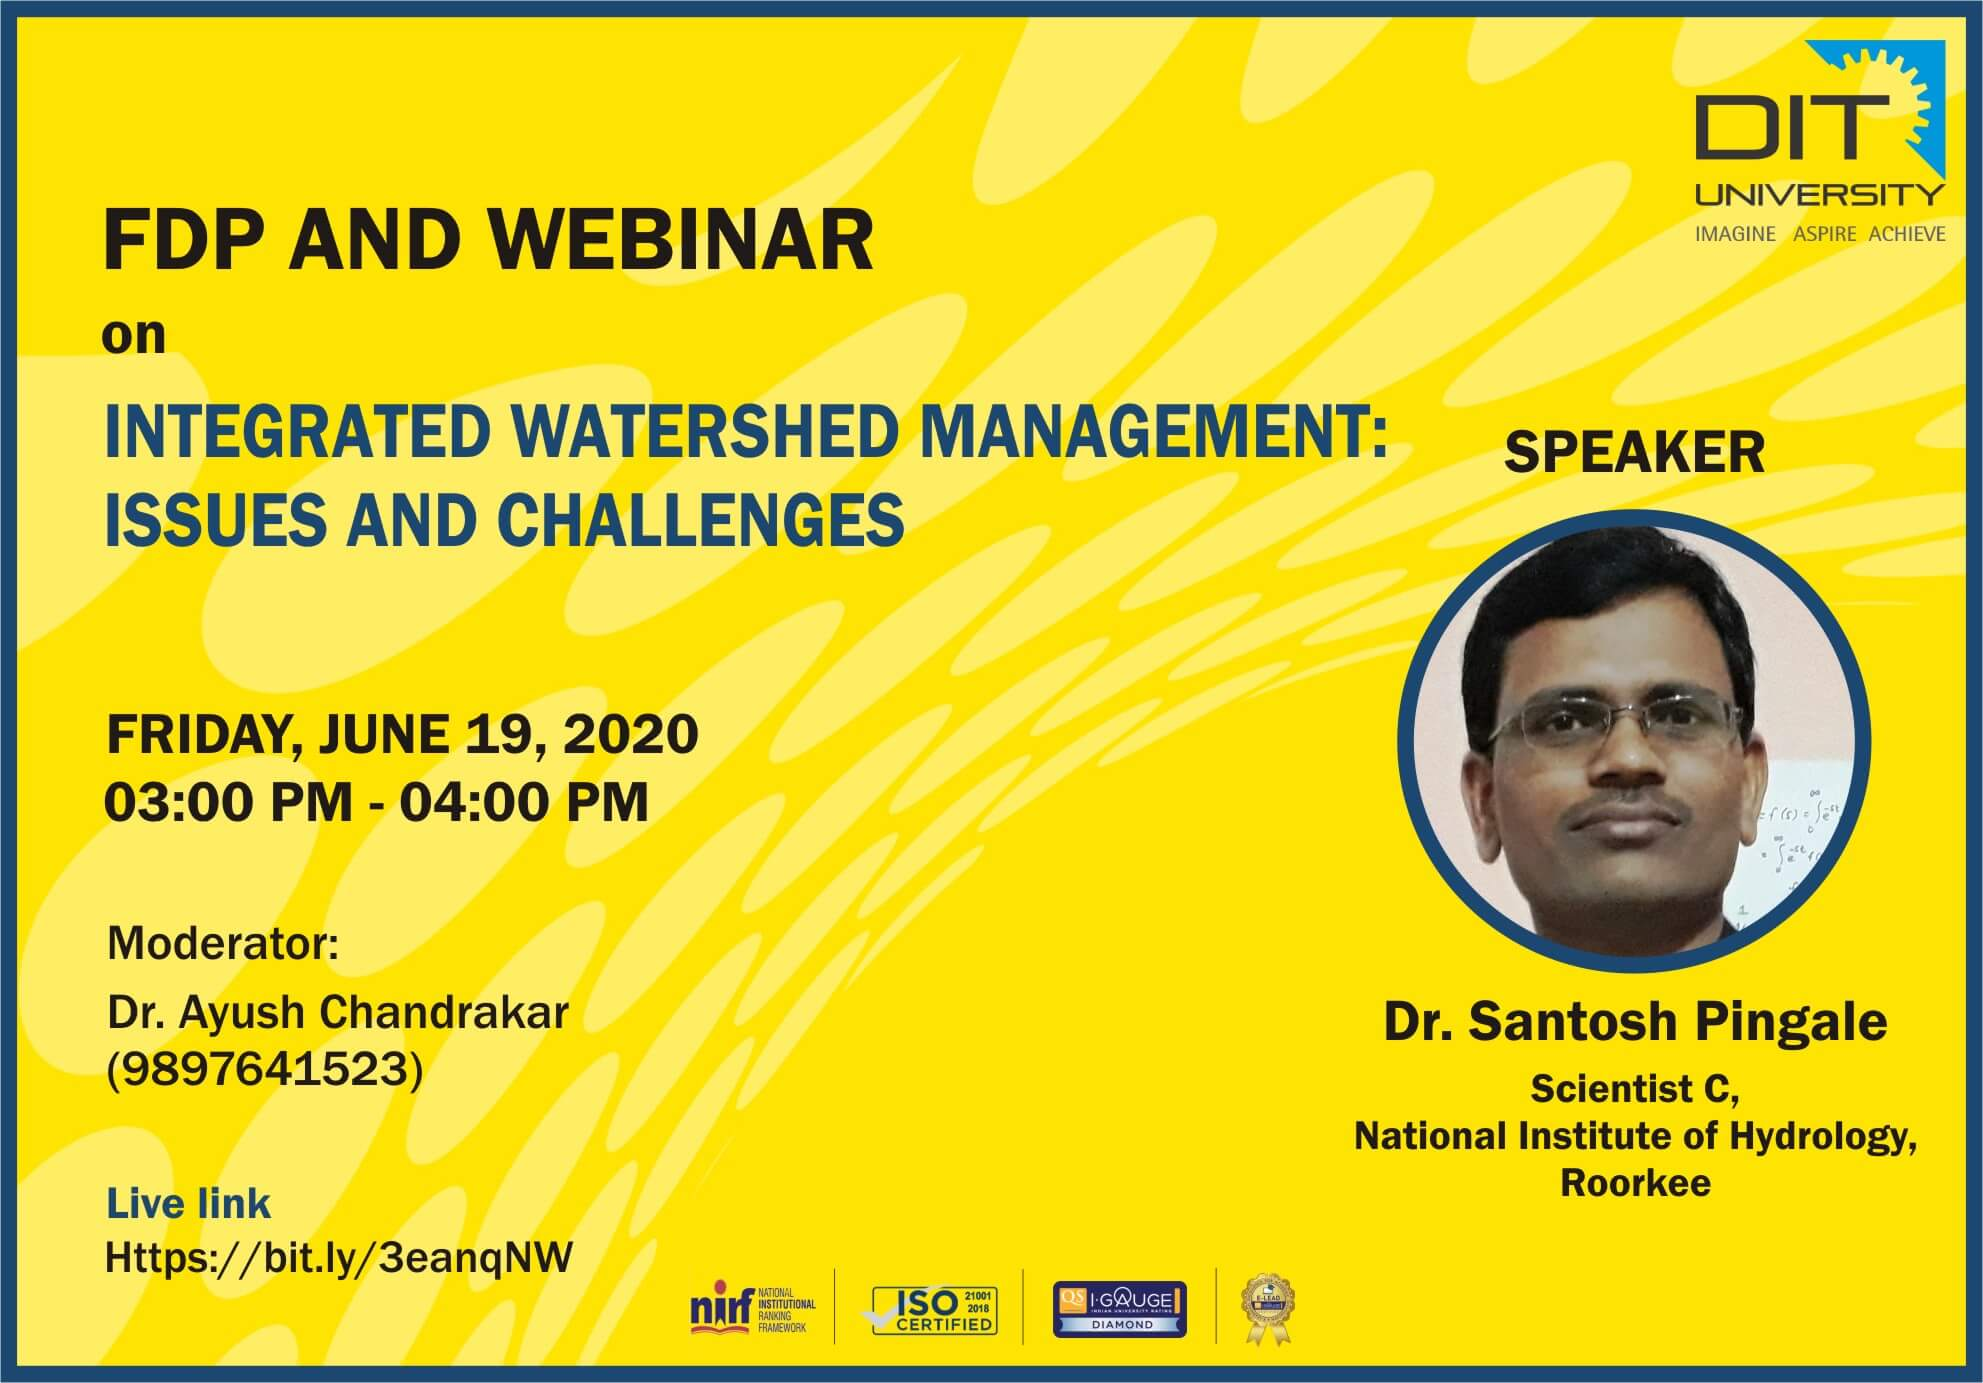 FDP & Webinar on 'Integrated Watershed Management: Issues & Challenges'